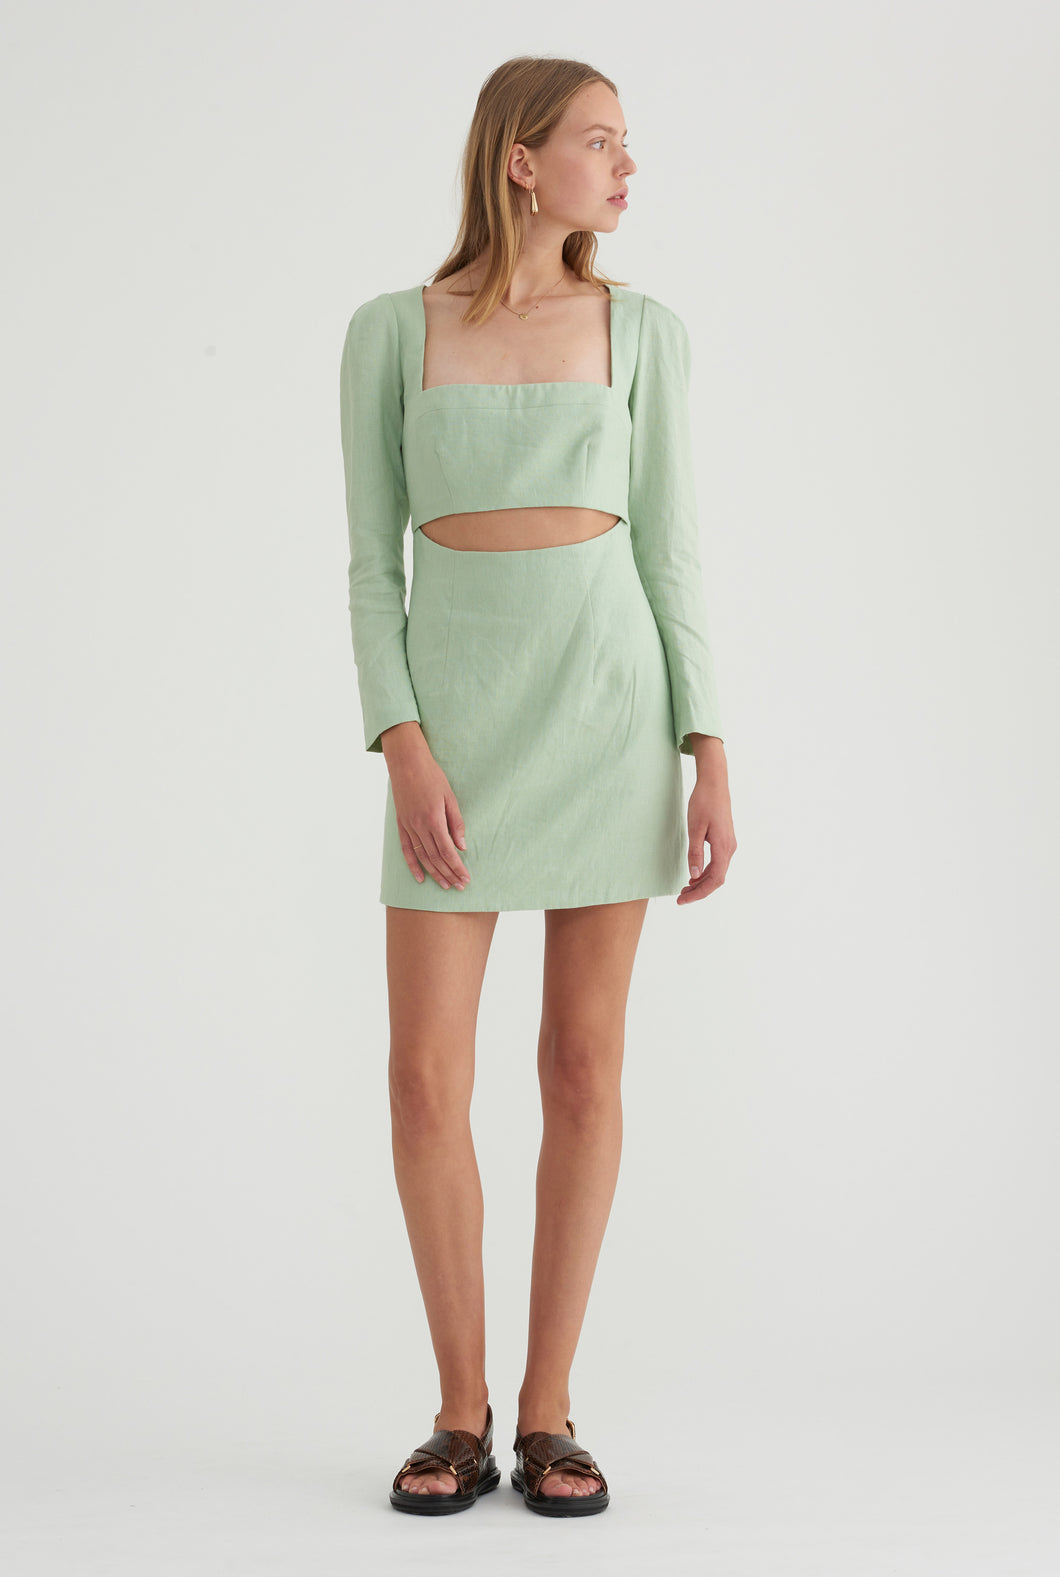 Linen Sleeved Dress - Mint